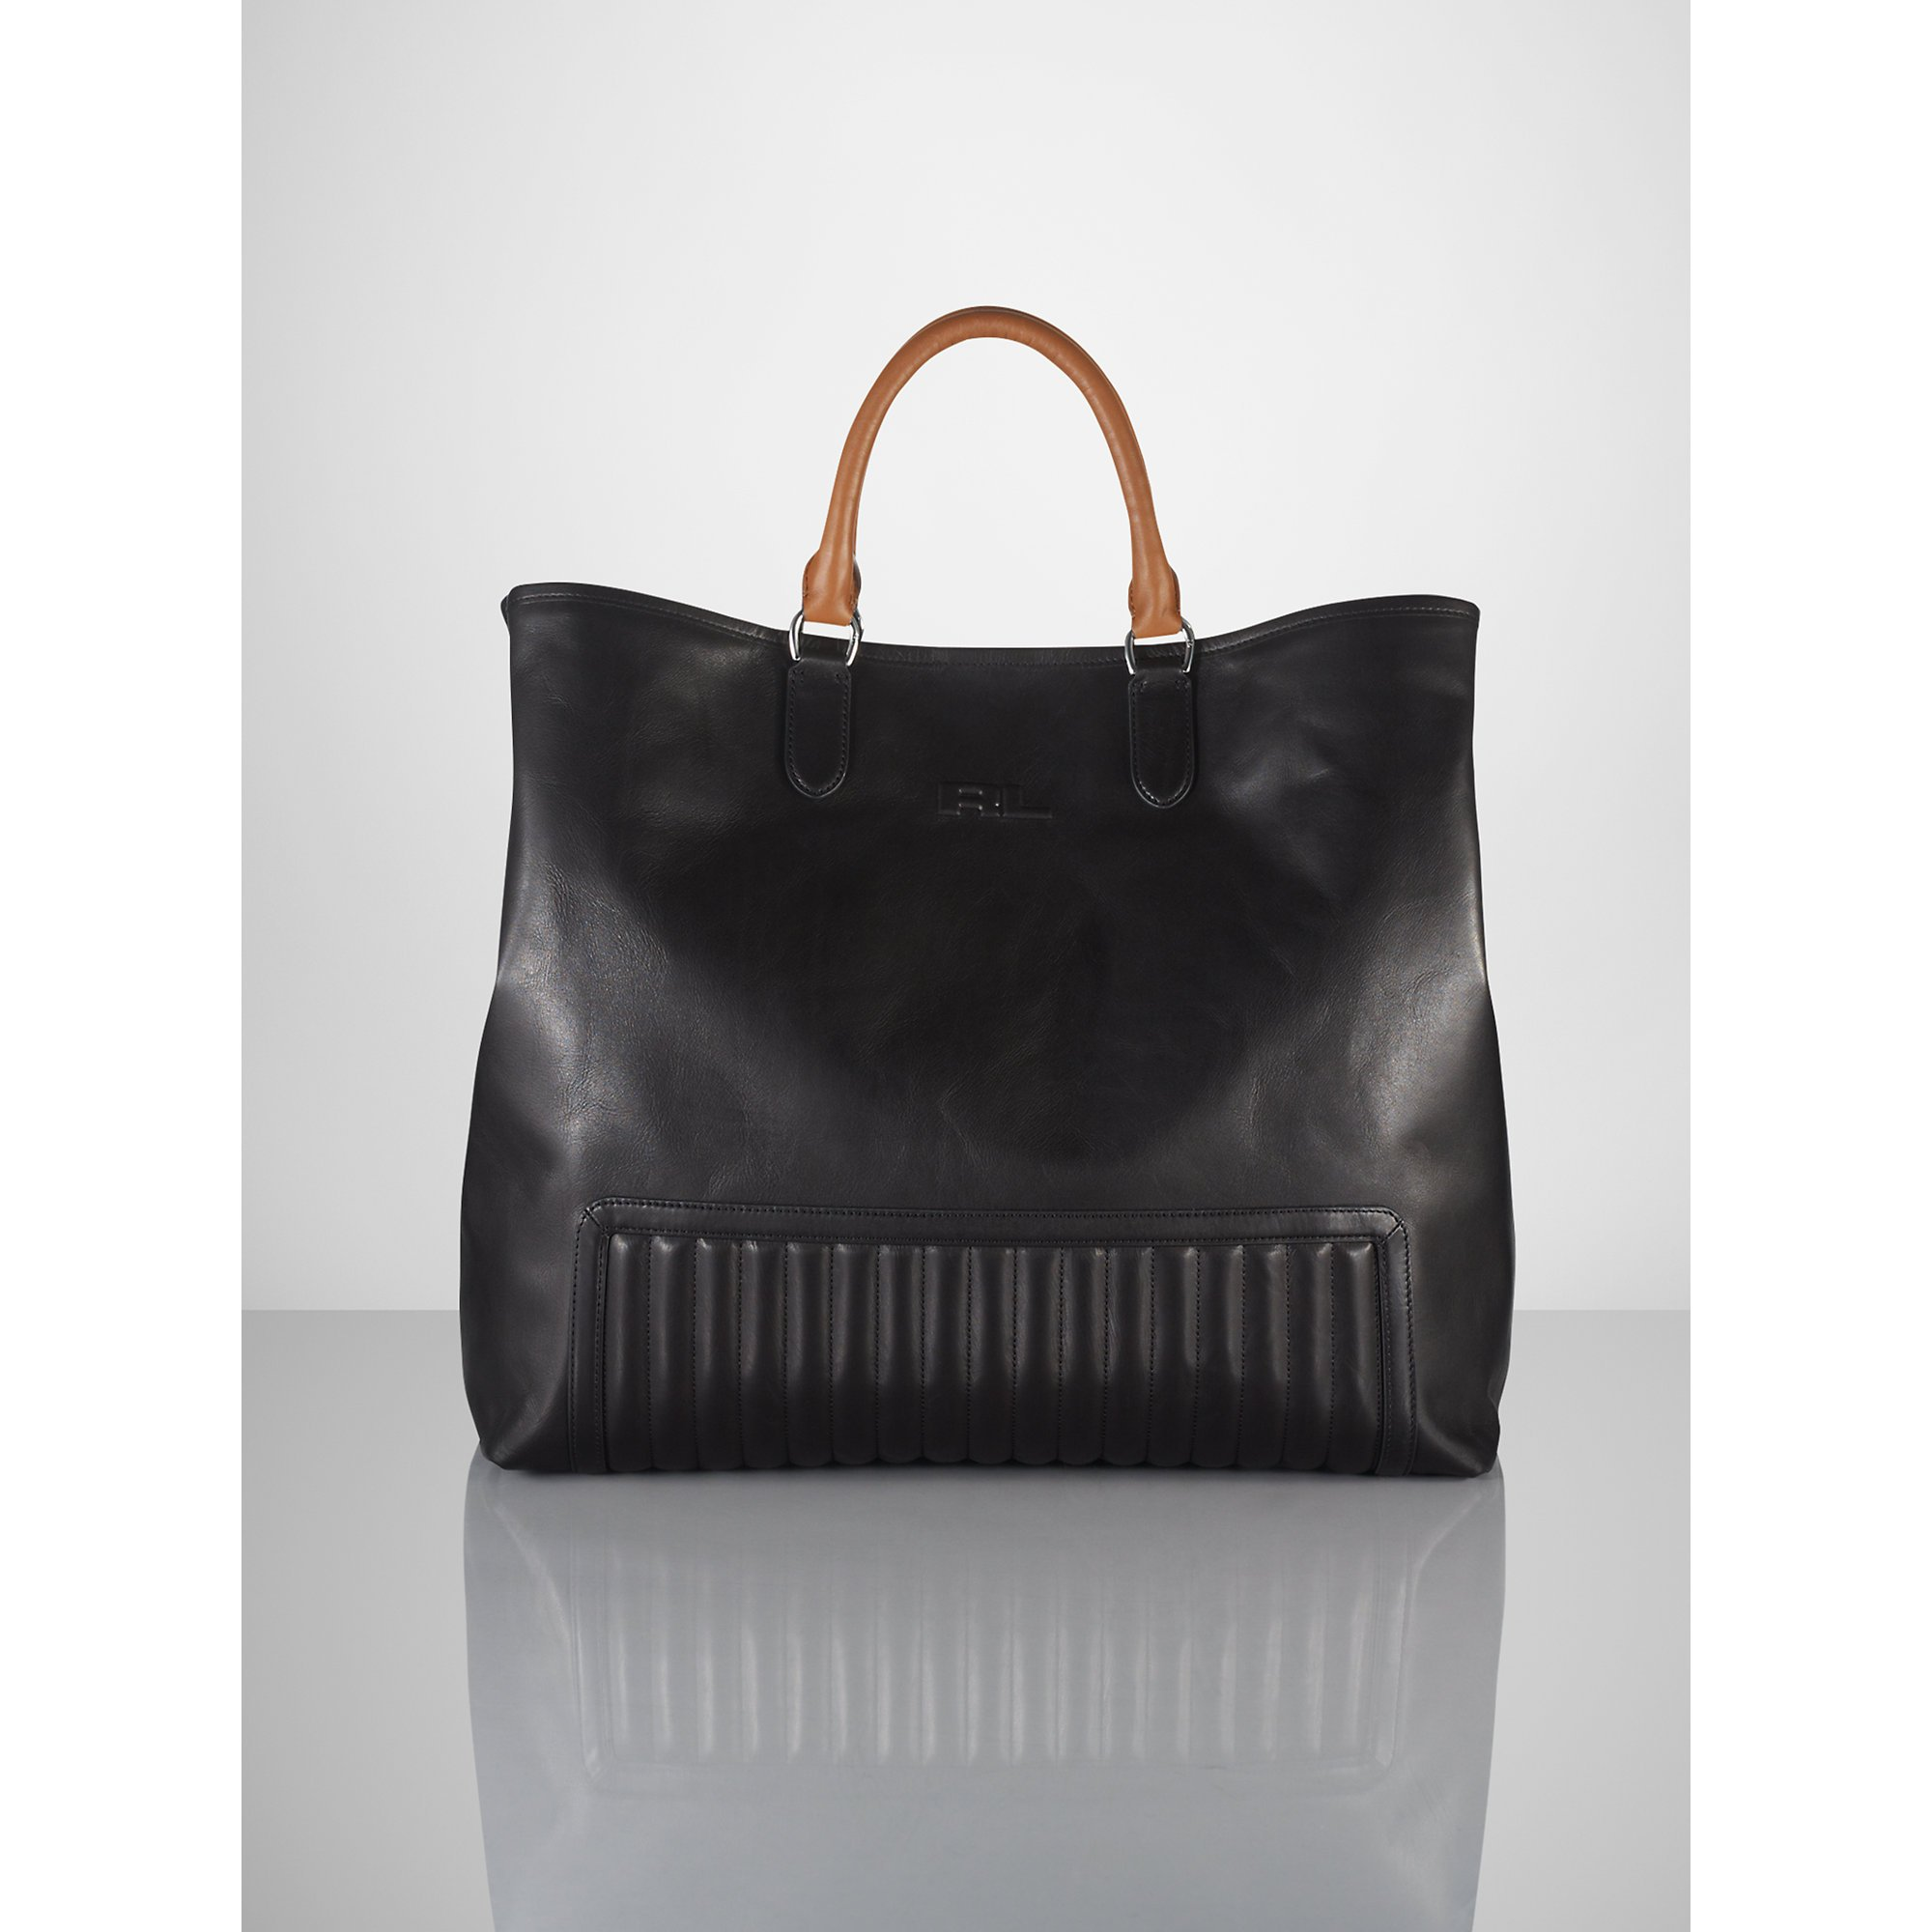 Ralph Lauren Tote Laukku : Ralph lauren quilted tote in black for men lyst